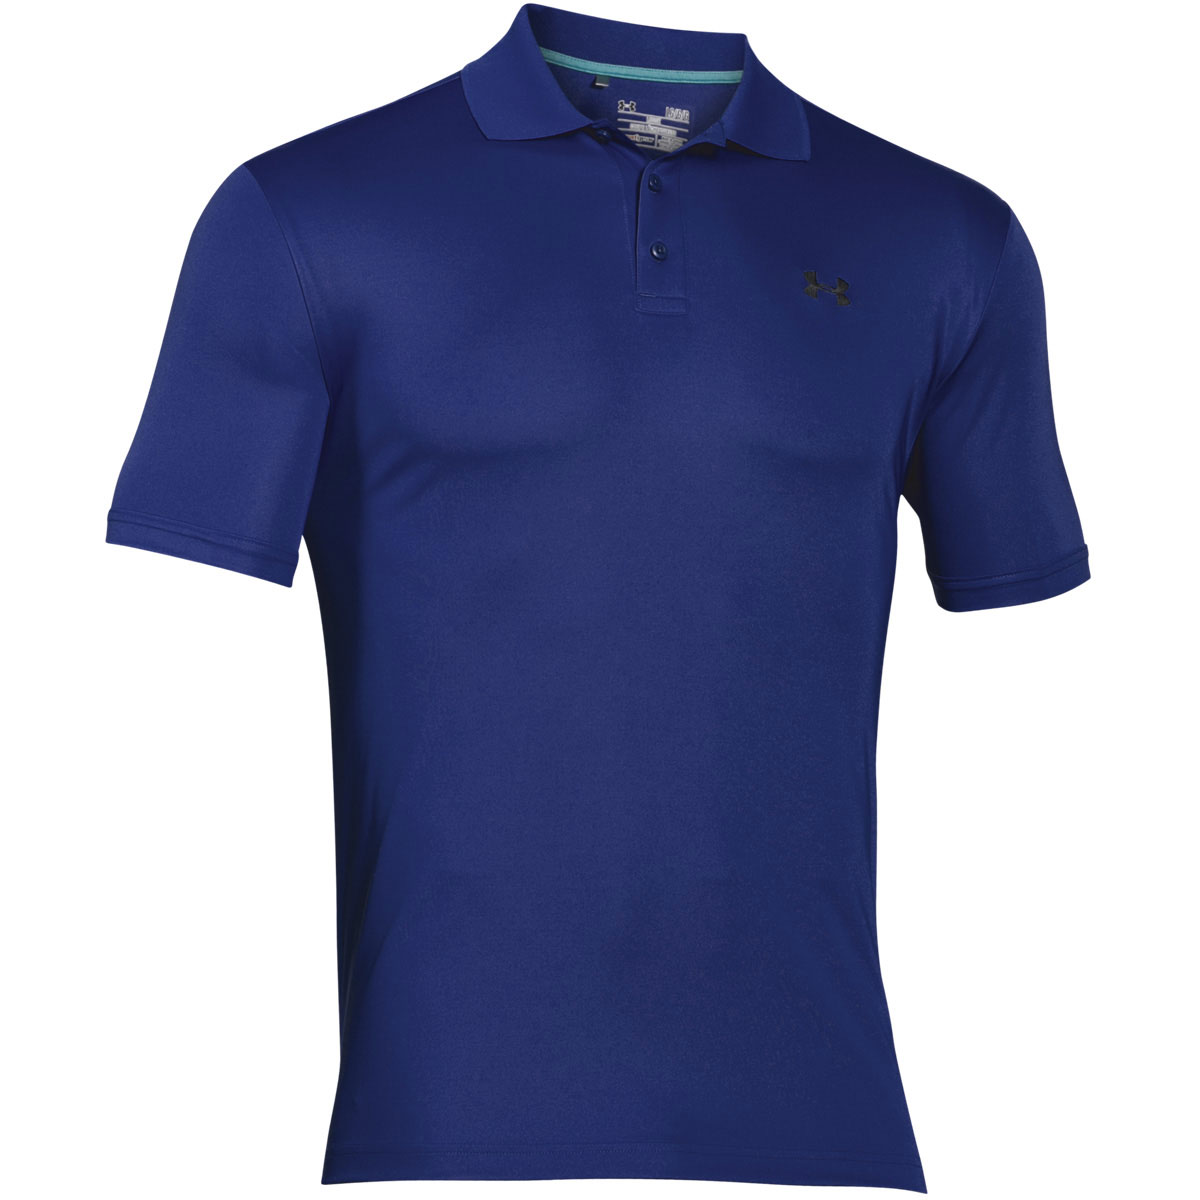 Under armour 2017 mens ua performance tech short sleeve for Von maur mens shirts